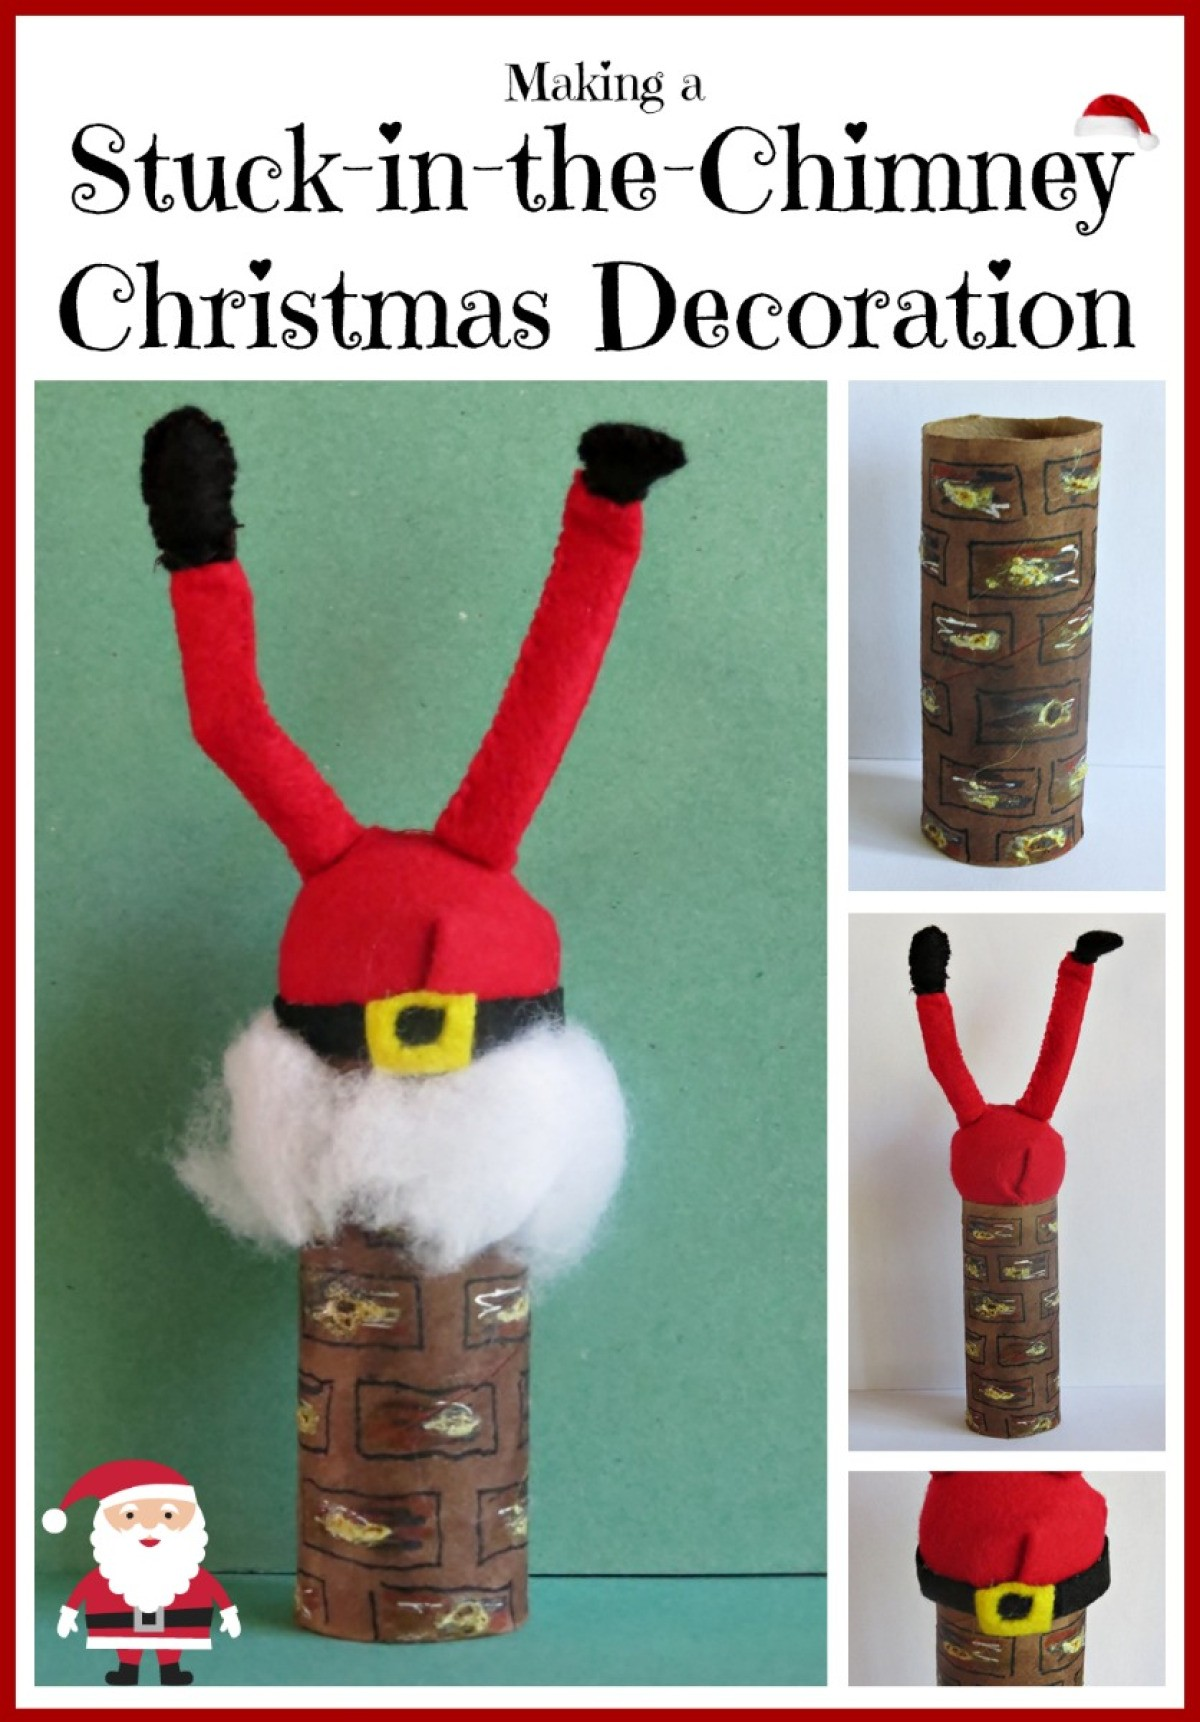 b293083113483 Making a Stuck-in-the-Chimney Christmas Decoration